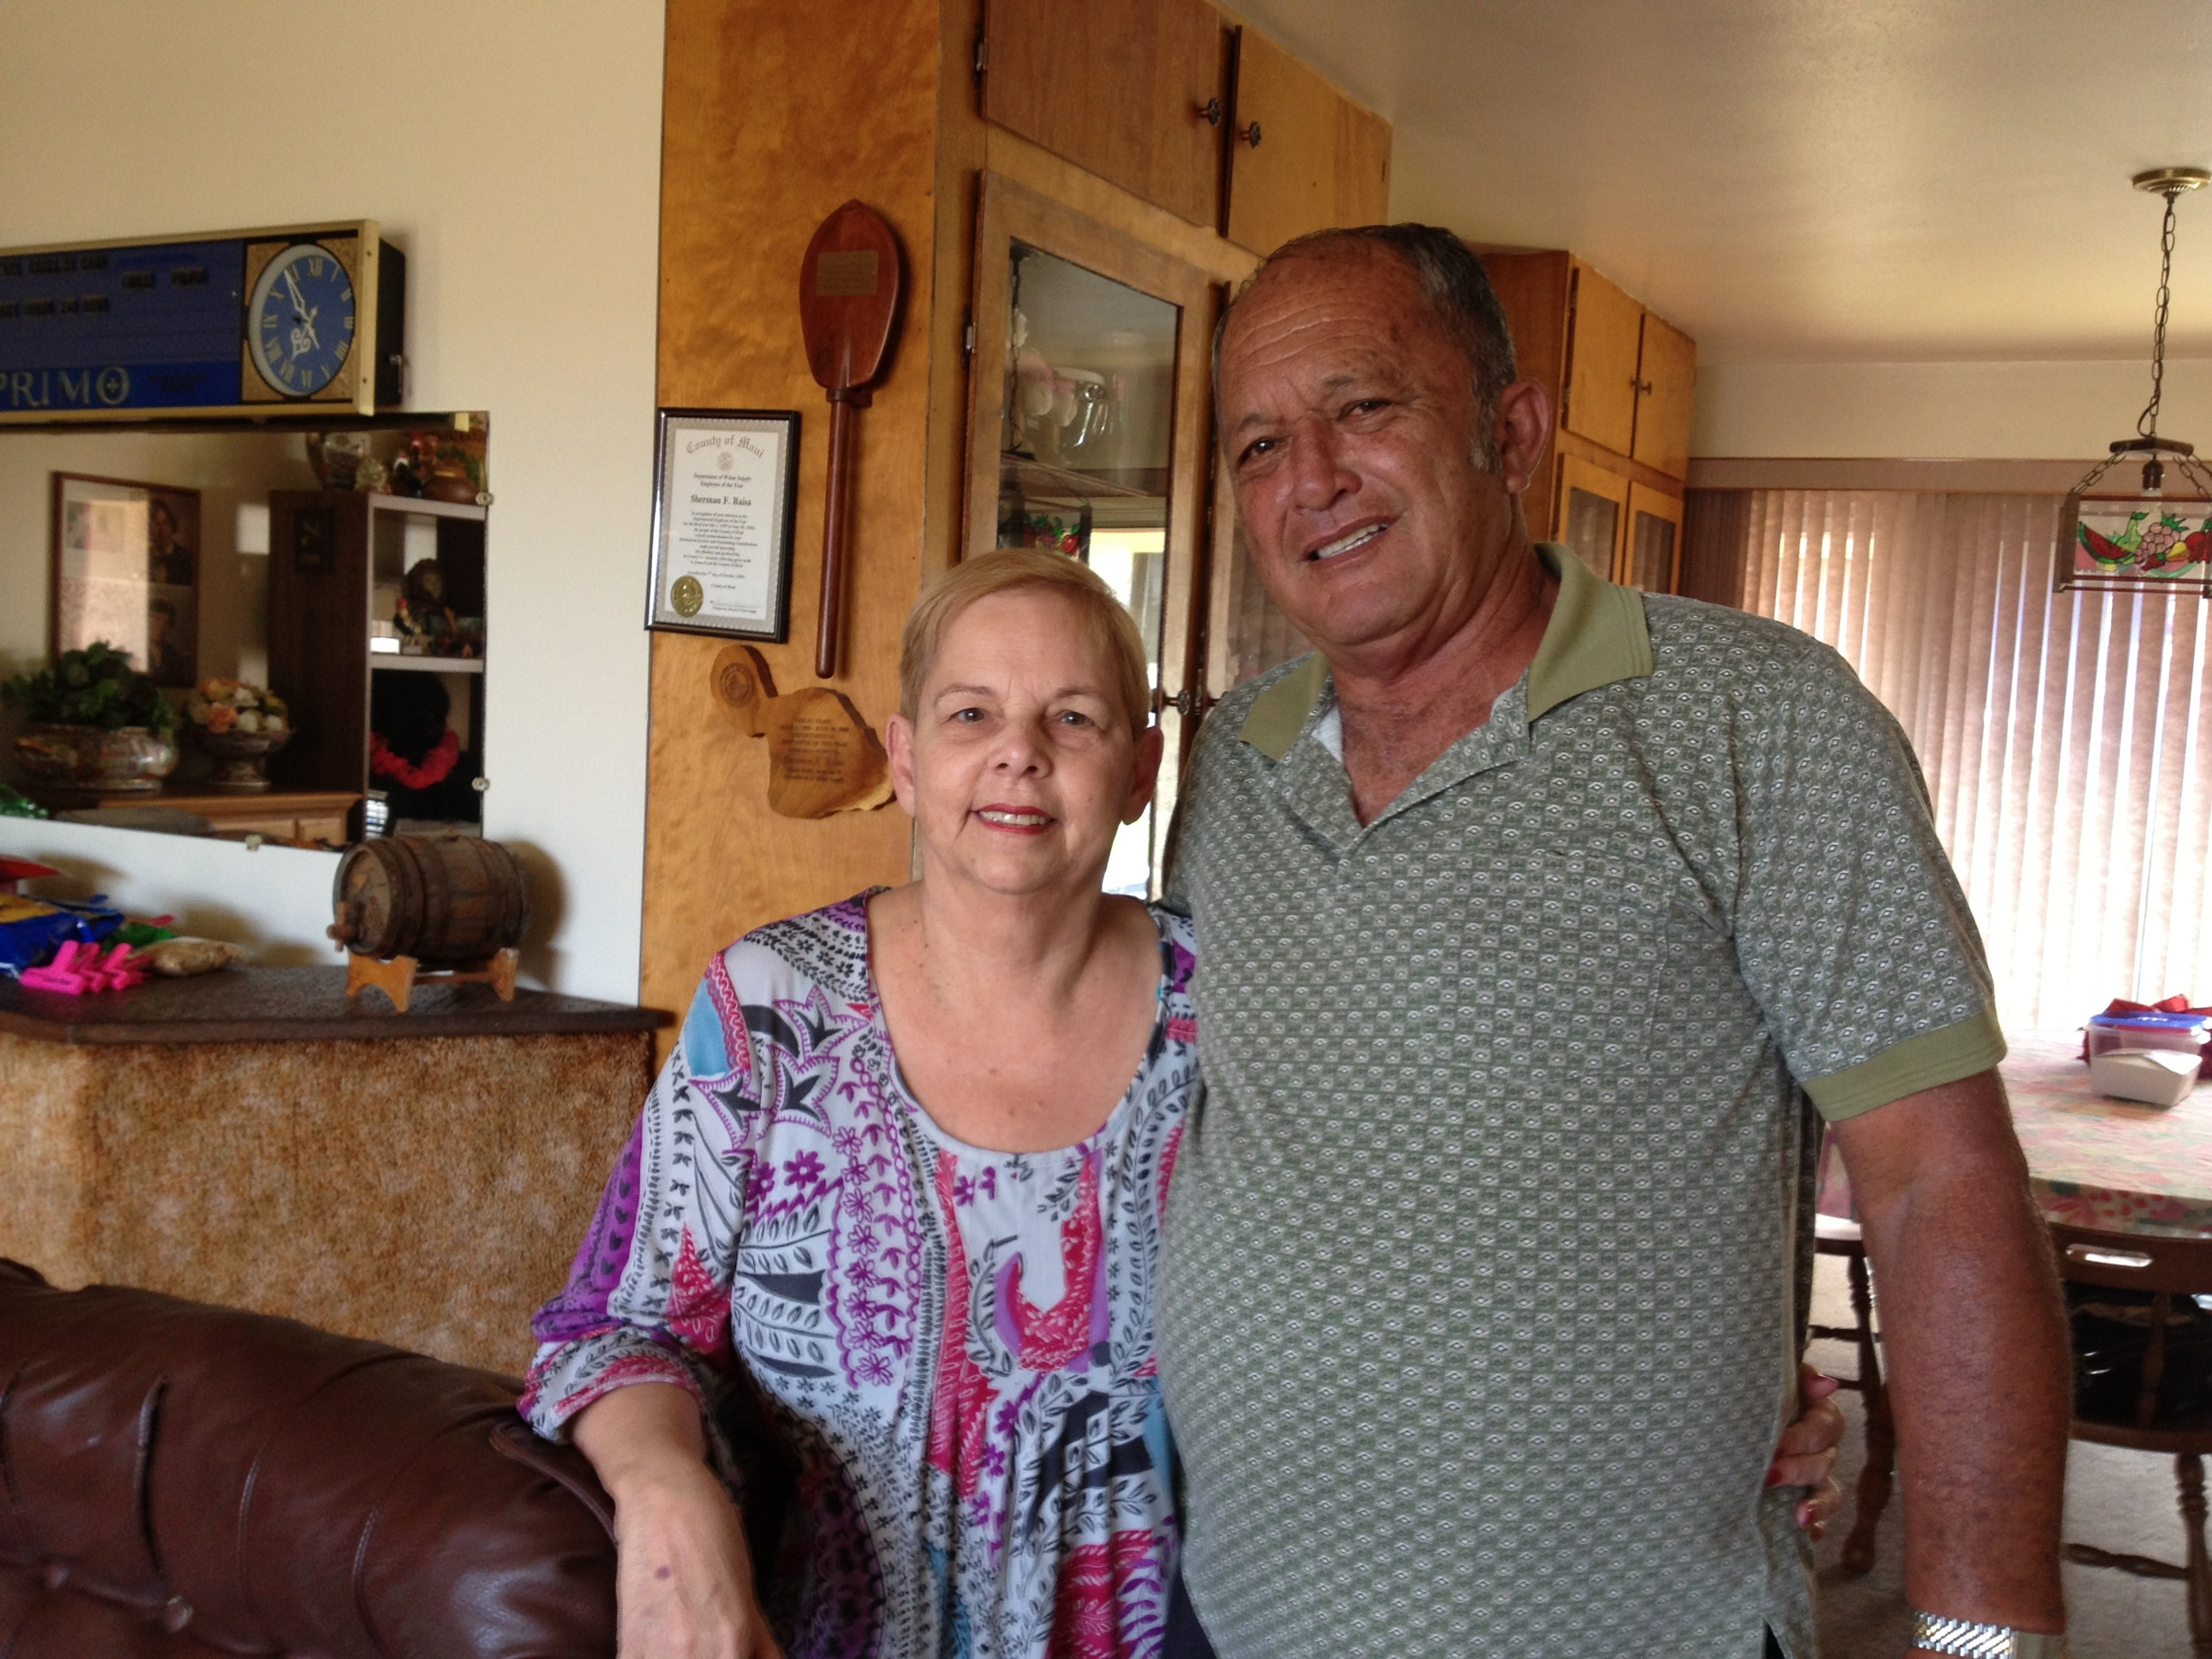 "Gladys Baisa with husband Sherman (Portuguese),  Gladys                     Normal   0           false   false   false     EN-US   JA   X-NONE                                                                                                                                                                                                                                                                                                                                                                           /* Style Definitions */ table.MsoNormalTable 	{mso-style-name:""Table Normal""; 	mso-tstyle-rowband-size:0; 	mso-tstyle-colband-size:0; 	mso-style-noshow:yes; 	mso-style-priority:99; 	mso-style-parent:""""; 	mso-padding-alt:0in 5.4pt 0in 5.4pt; 	mso-para-margin:0in; 	mso-para-margin-bottom:.0001pt; 	mso-pagination:widow-orphan; 	font-size:12.0pt; 	font-family:Cambria; 	mso-ascii-font-family:Cambria; 	mso-ascii-theme-font:minor-latin; 	mso-hansi-font-family:Cambria; 	mso-hansi-theme-font:minor-latin;}     was the former director of Maui Economic Opportunity (MEO). Maui."